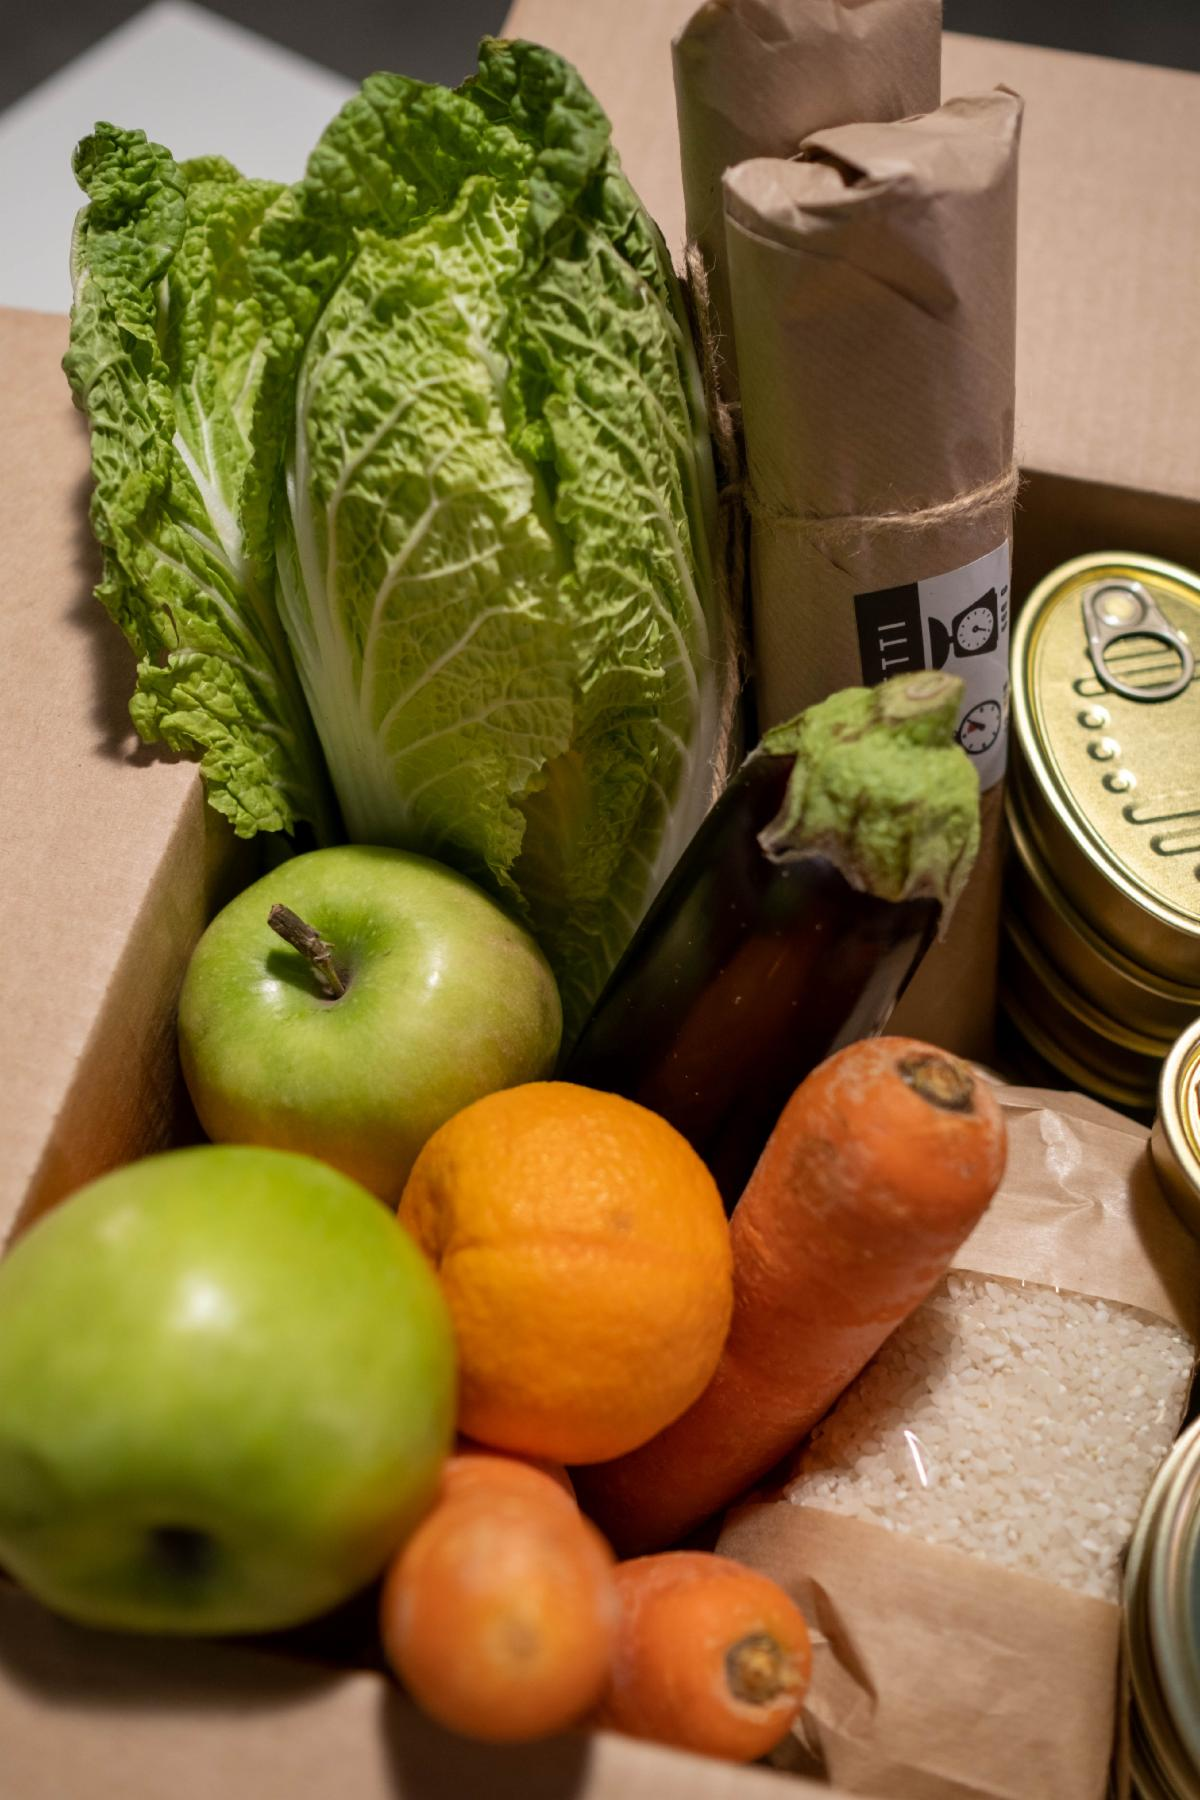 Vegetables and canned goods in a box